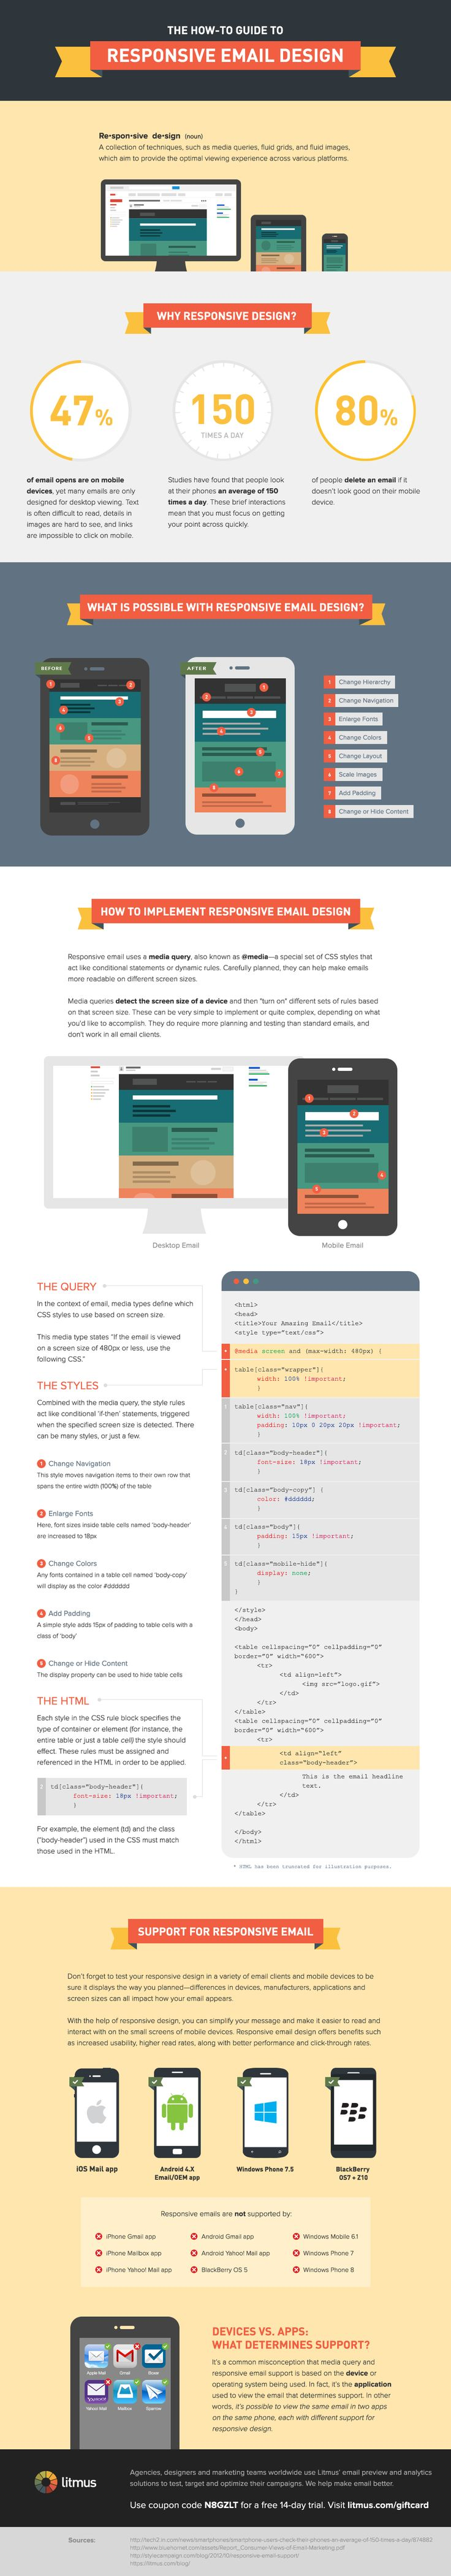 The Ultimate How-To Guide for Responsive Email Design